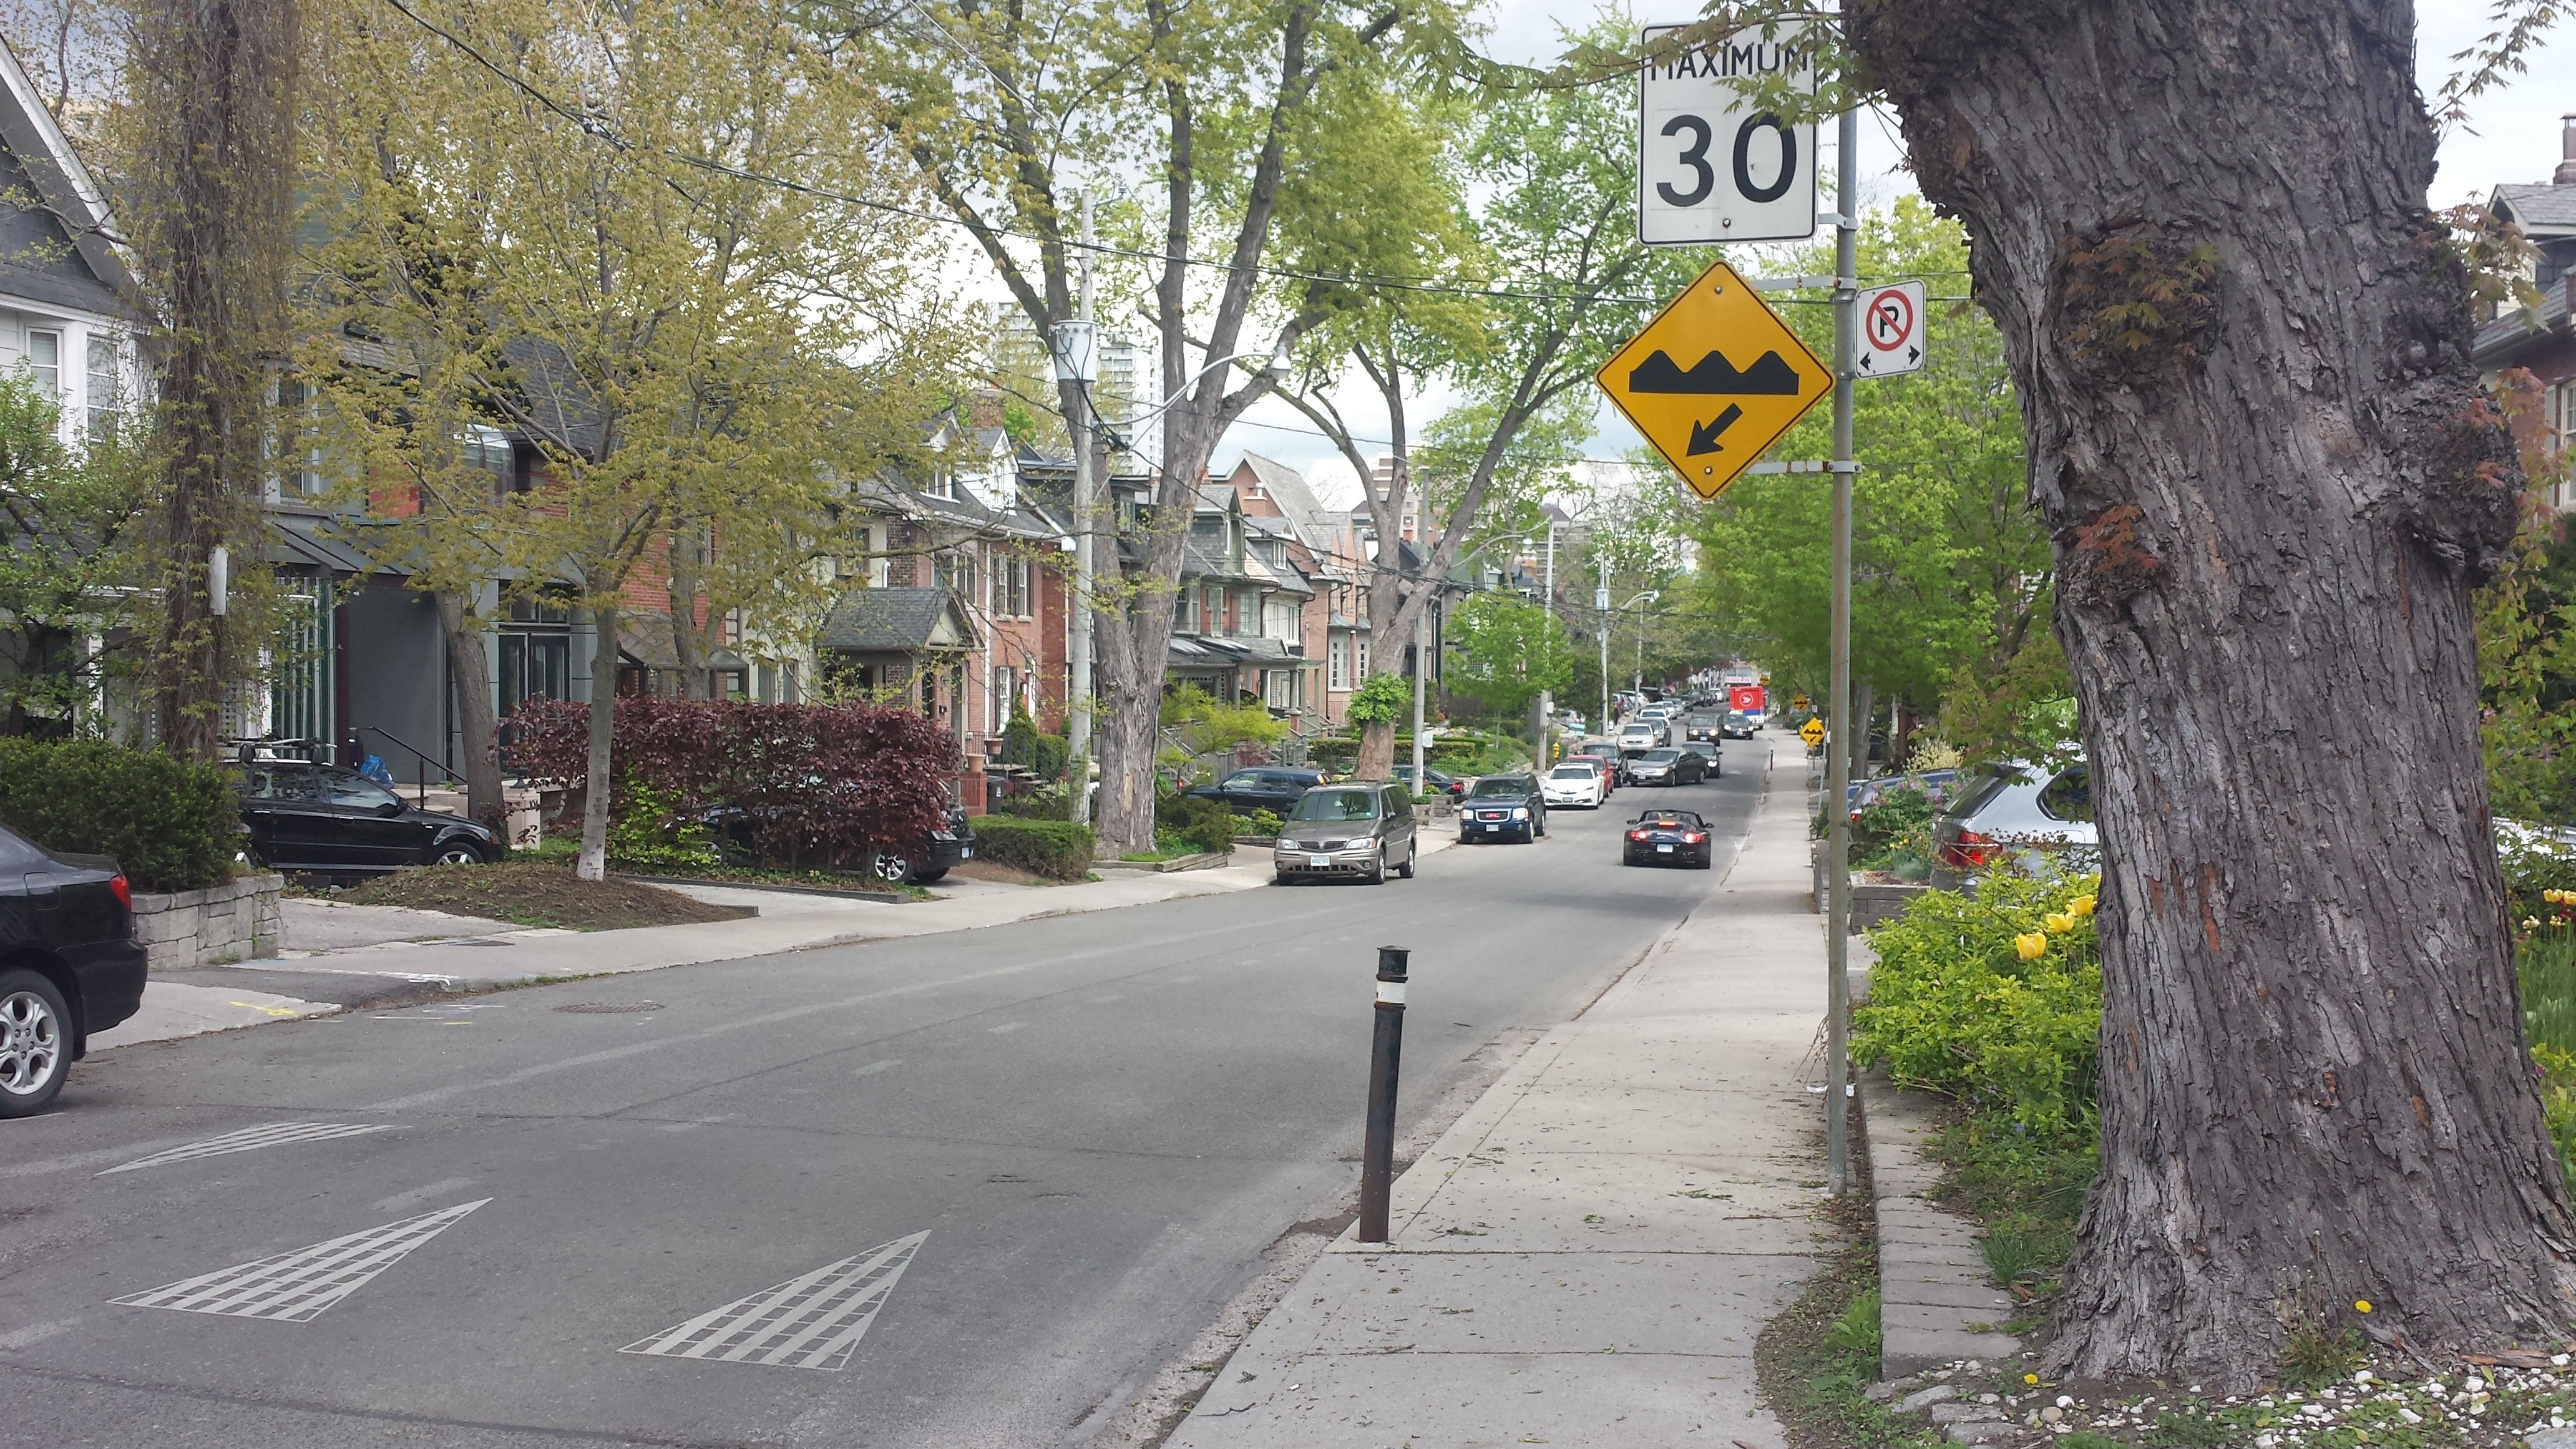 Picture of a residential street in Toronto with speed bumps and a sign that shows a speed limit of 30 kilometre per hour